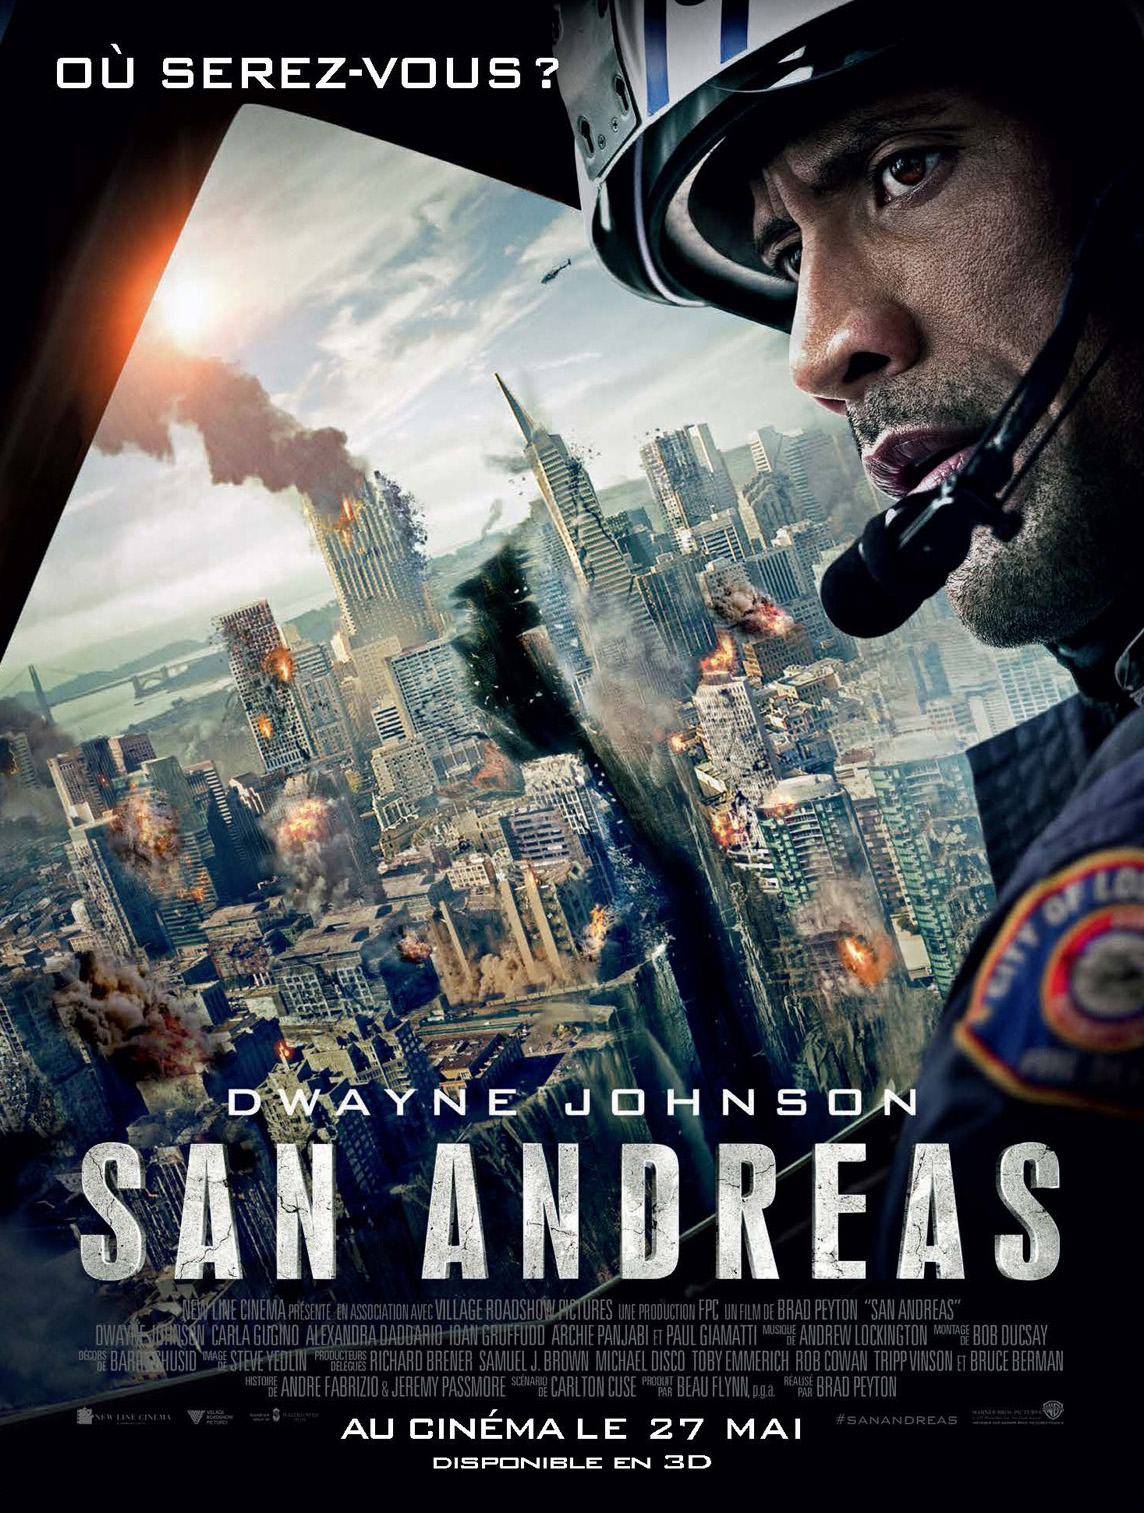 affiche du film san andreas affiche 1 sur 5 allocin. Black Bedroom Furniture Sets. Home Design Ideas